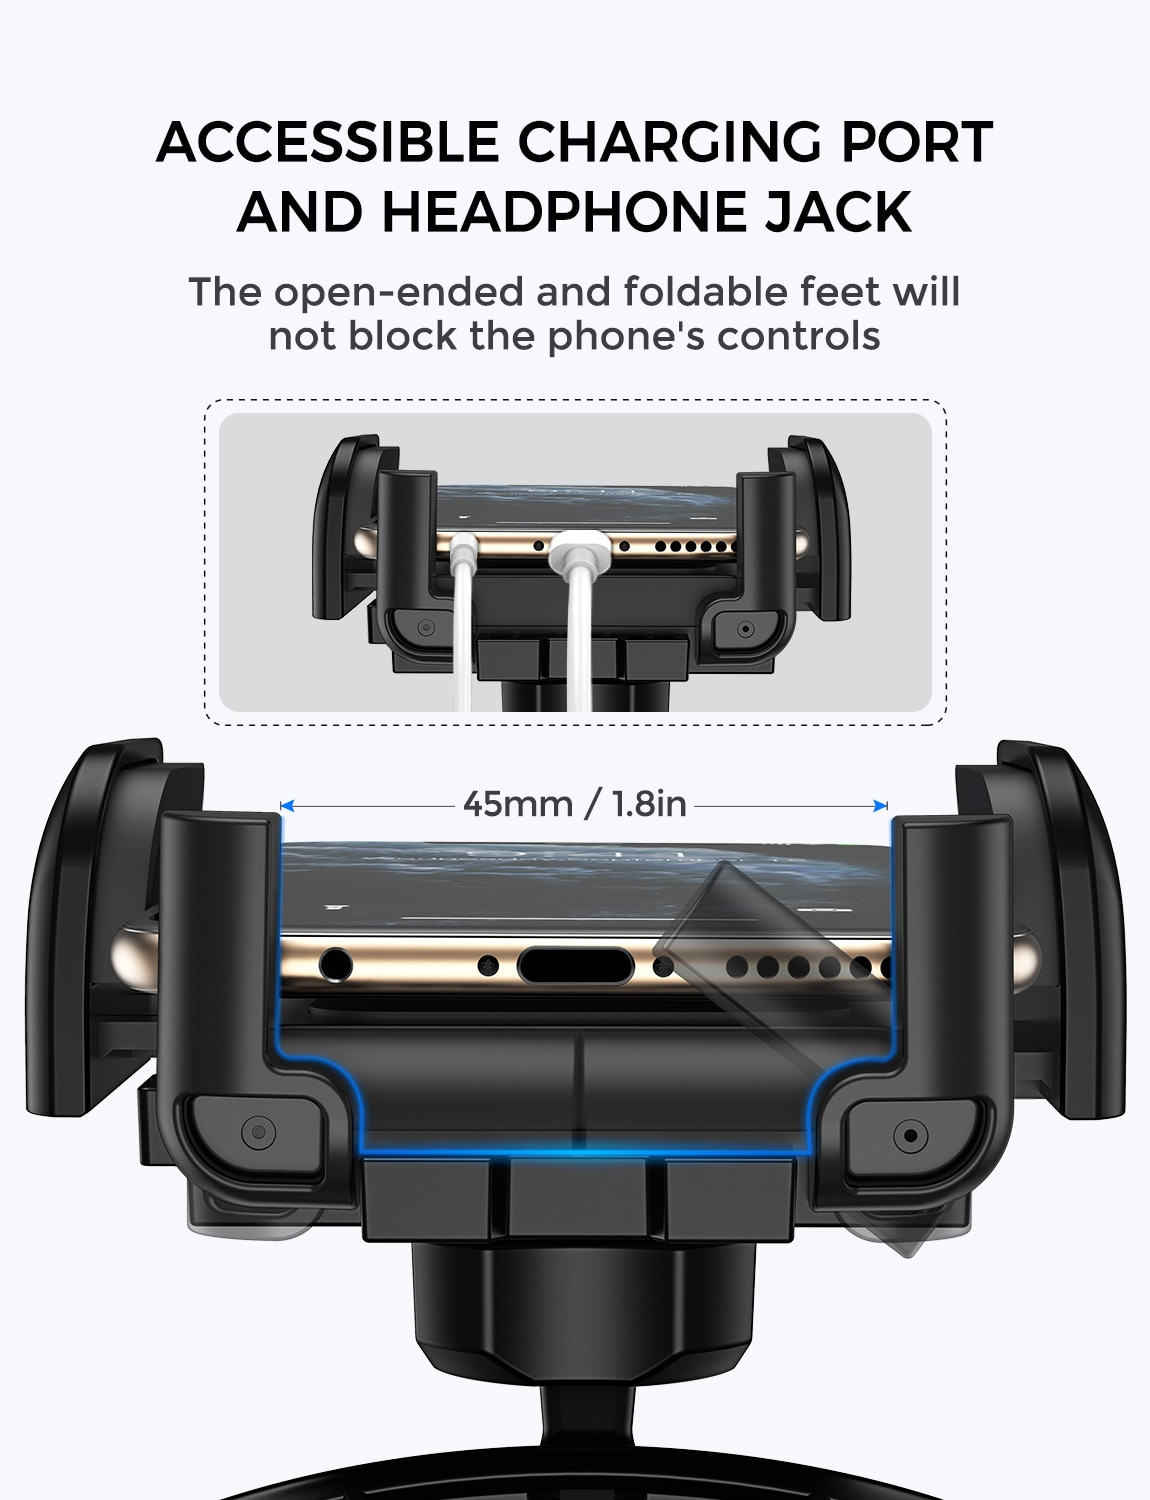 H745411354219418c8367e77aef3978bcr - Mpow MCM3 CD Slot Car Phone Holder Car Mount Holder Stand 360 Rotation Mobile Phone Holder Stand for iphone 12 XS Samsung Huawei